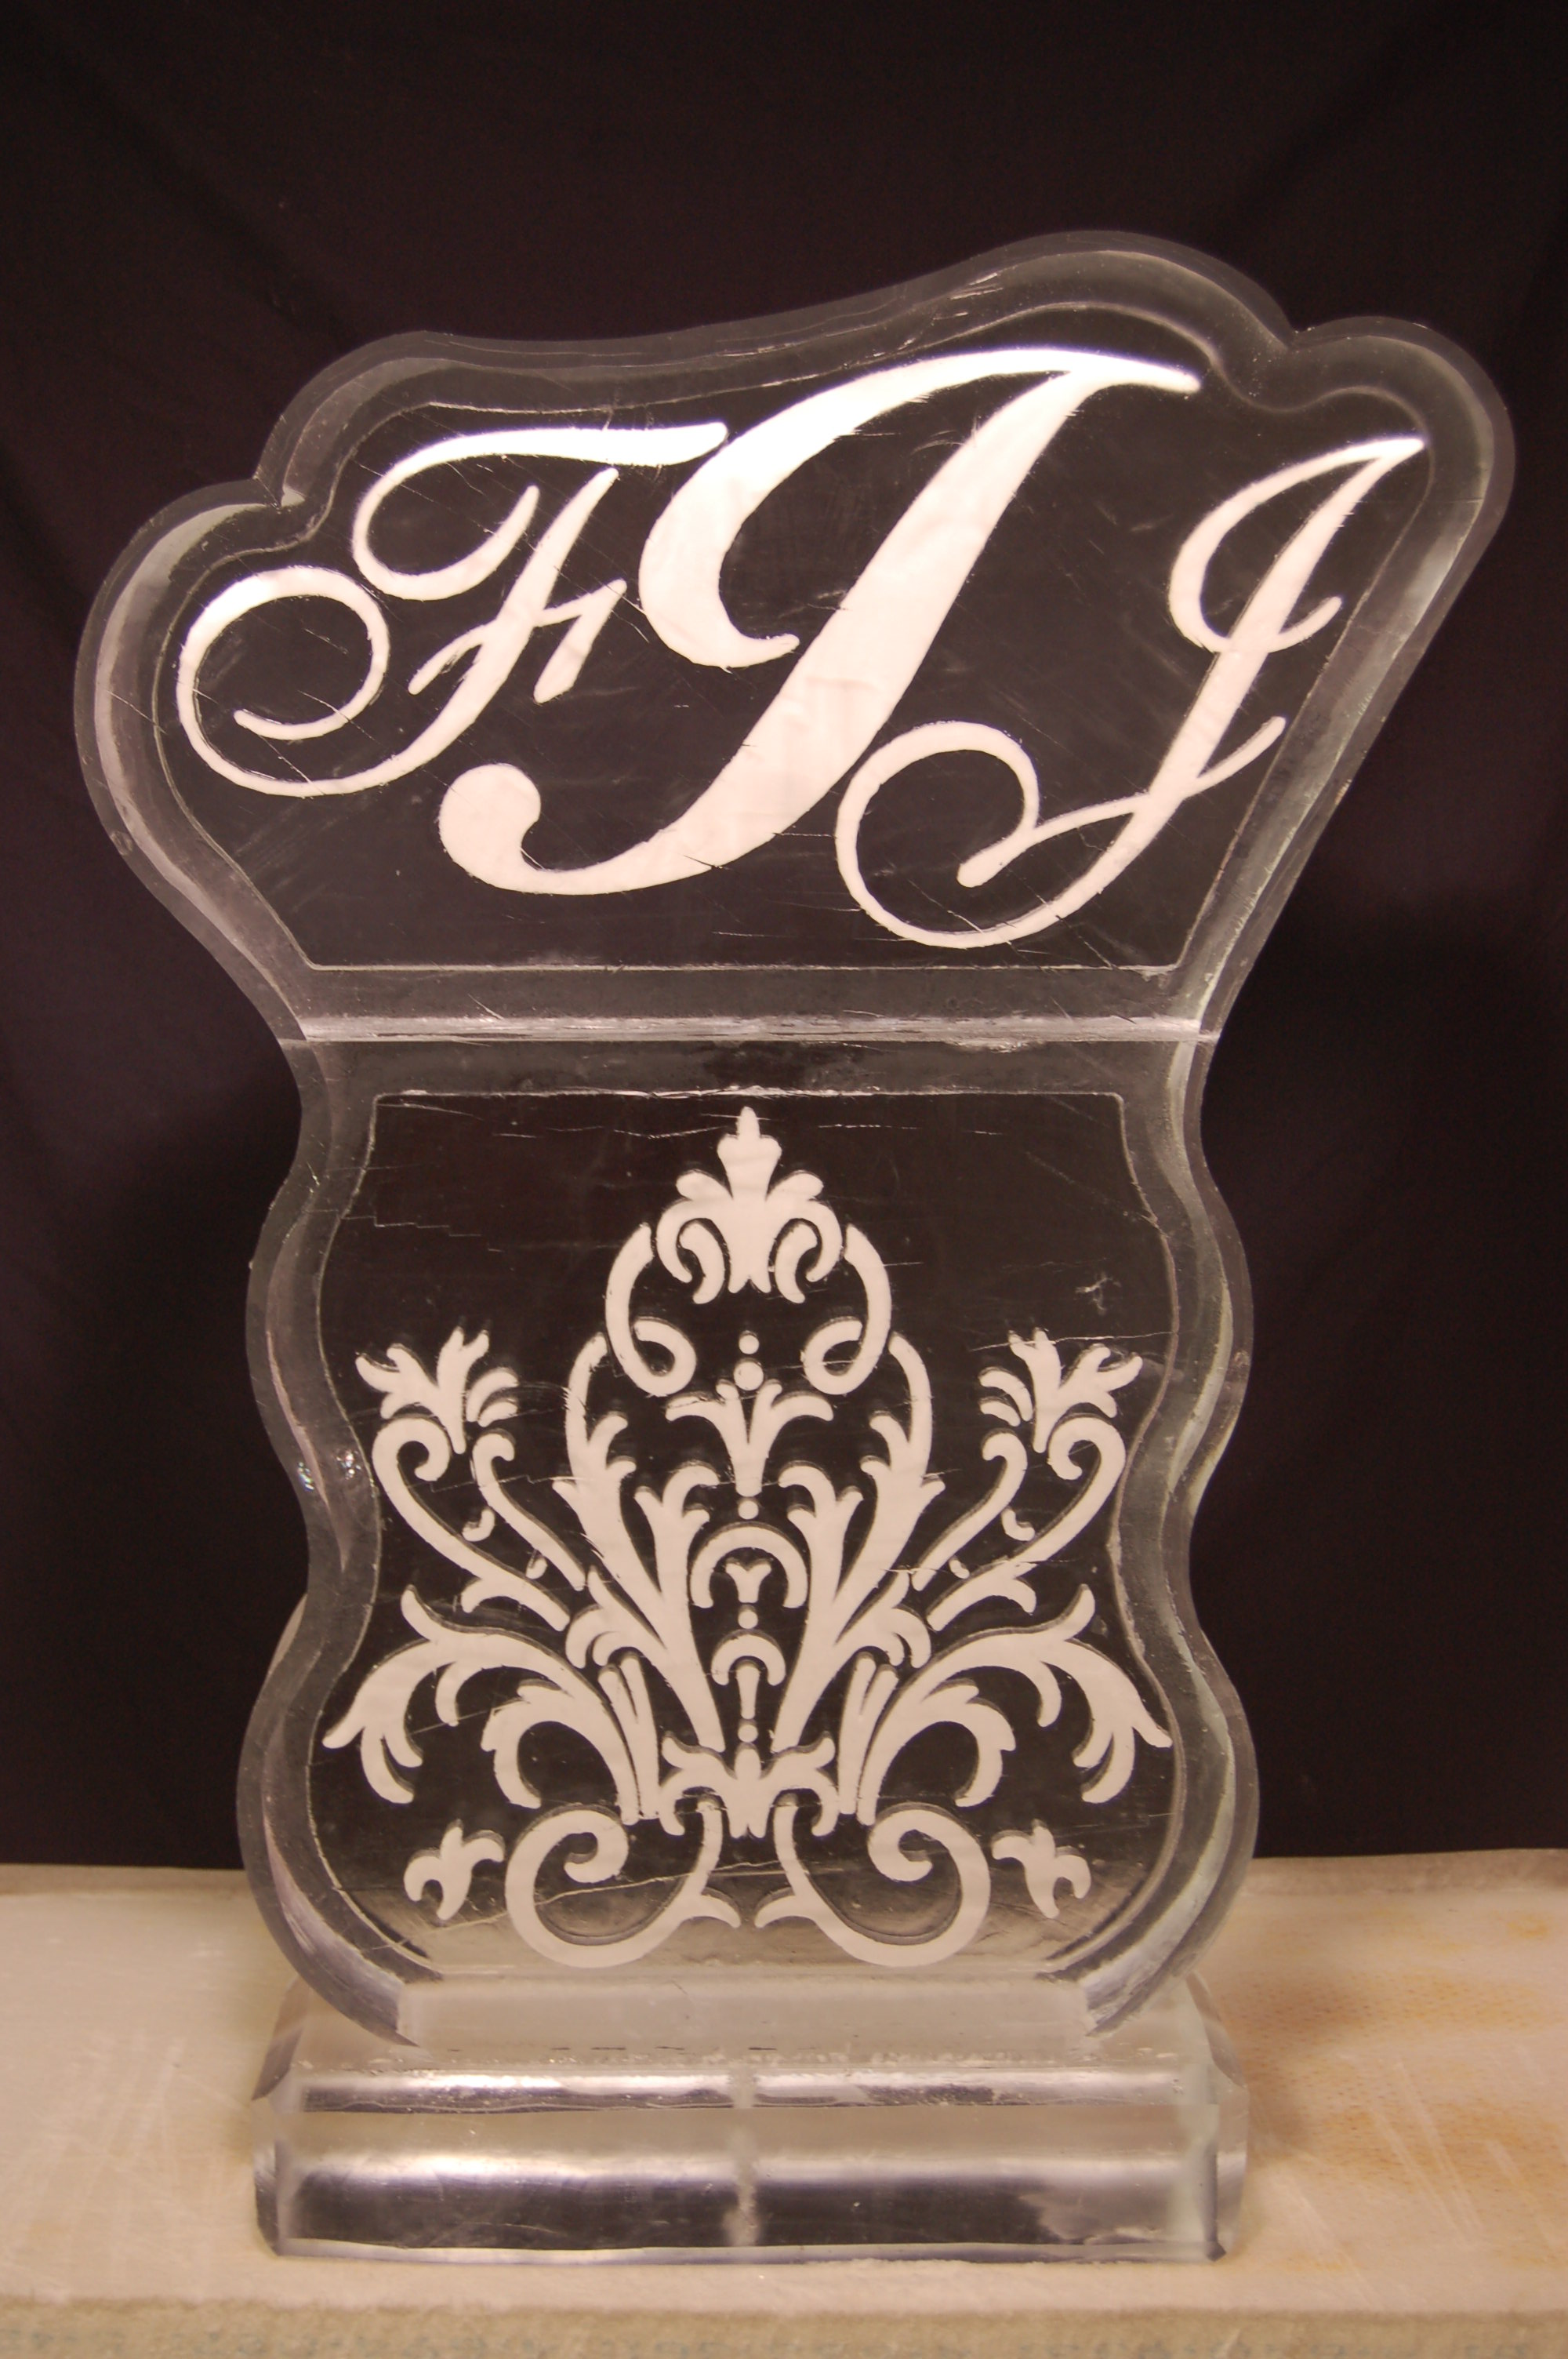 Monogram With Floral Design